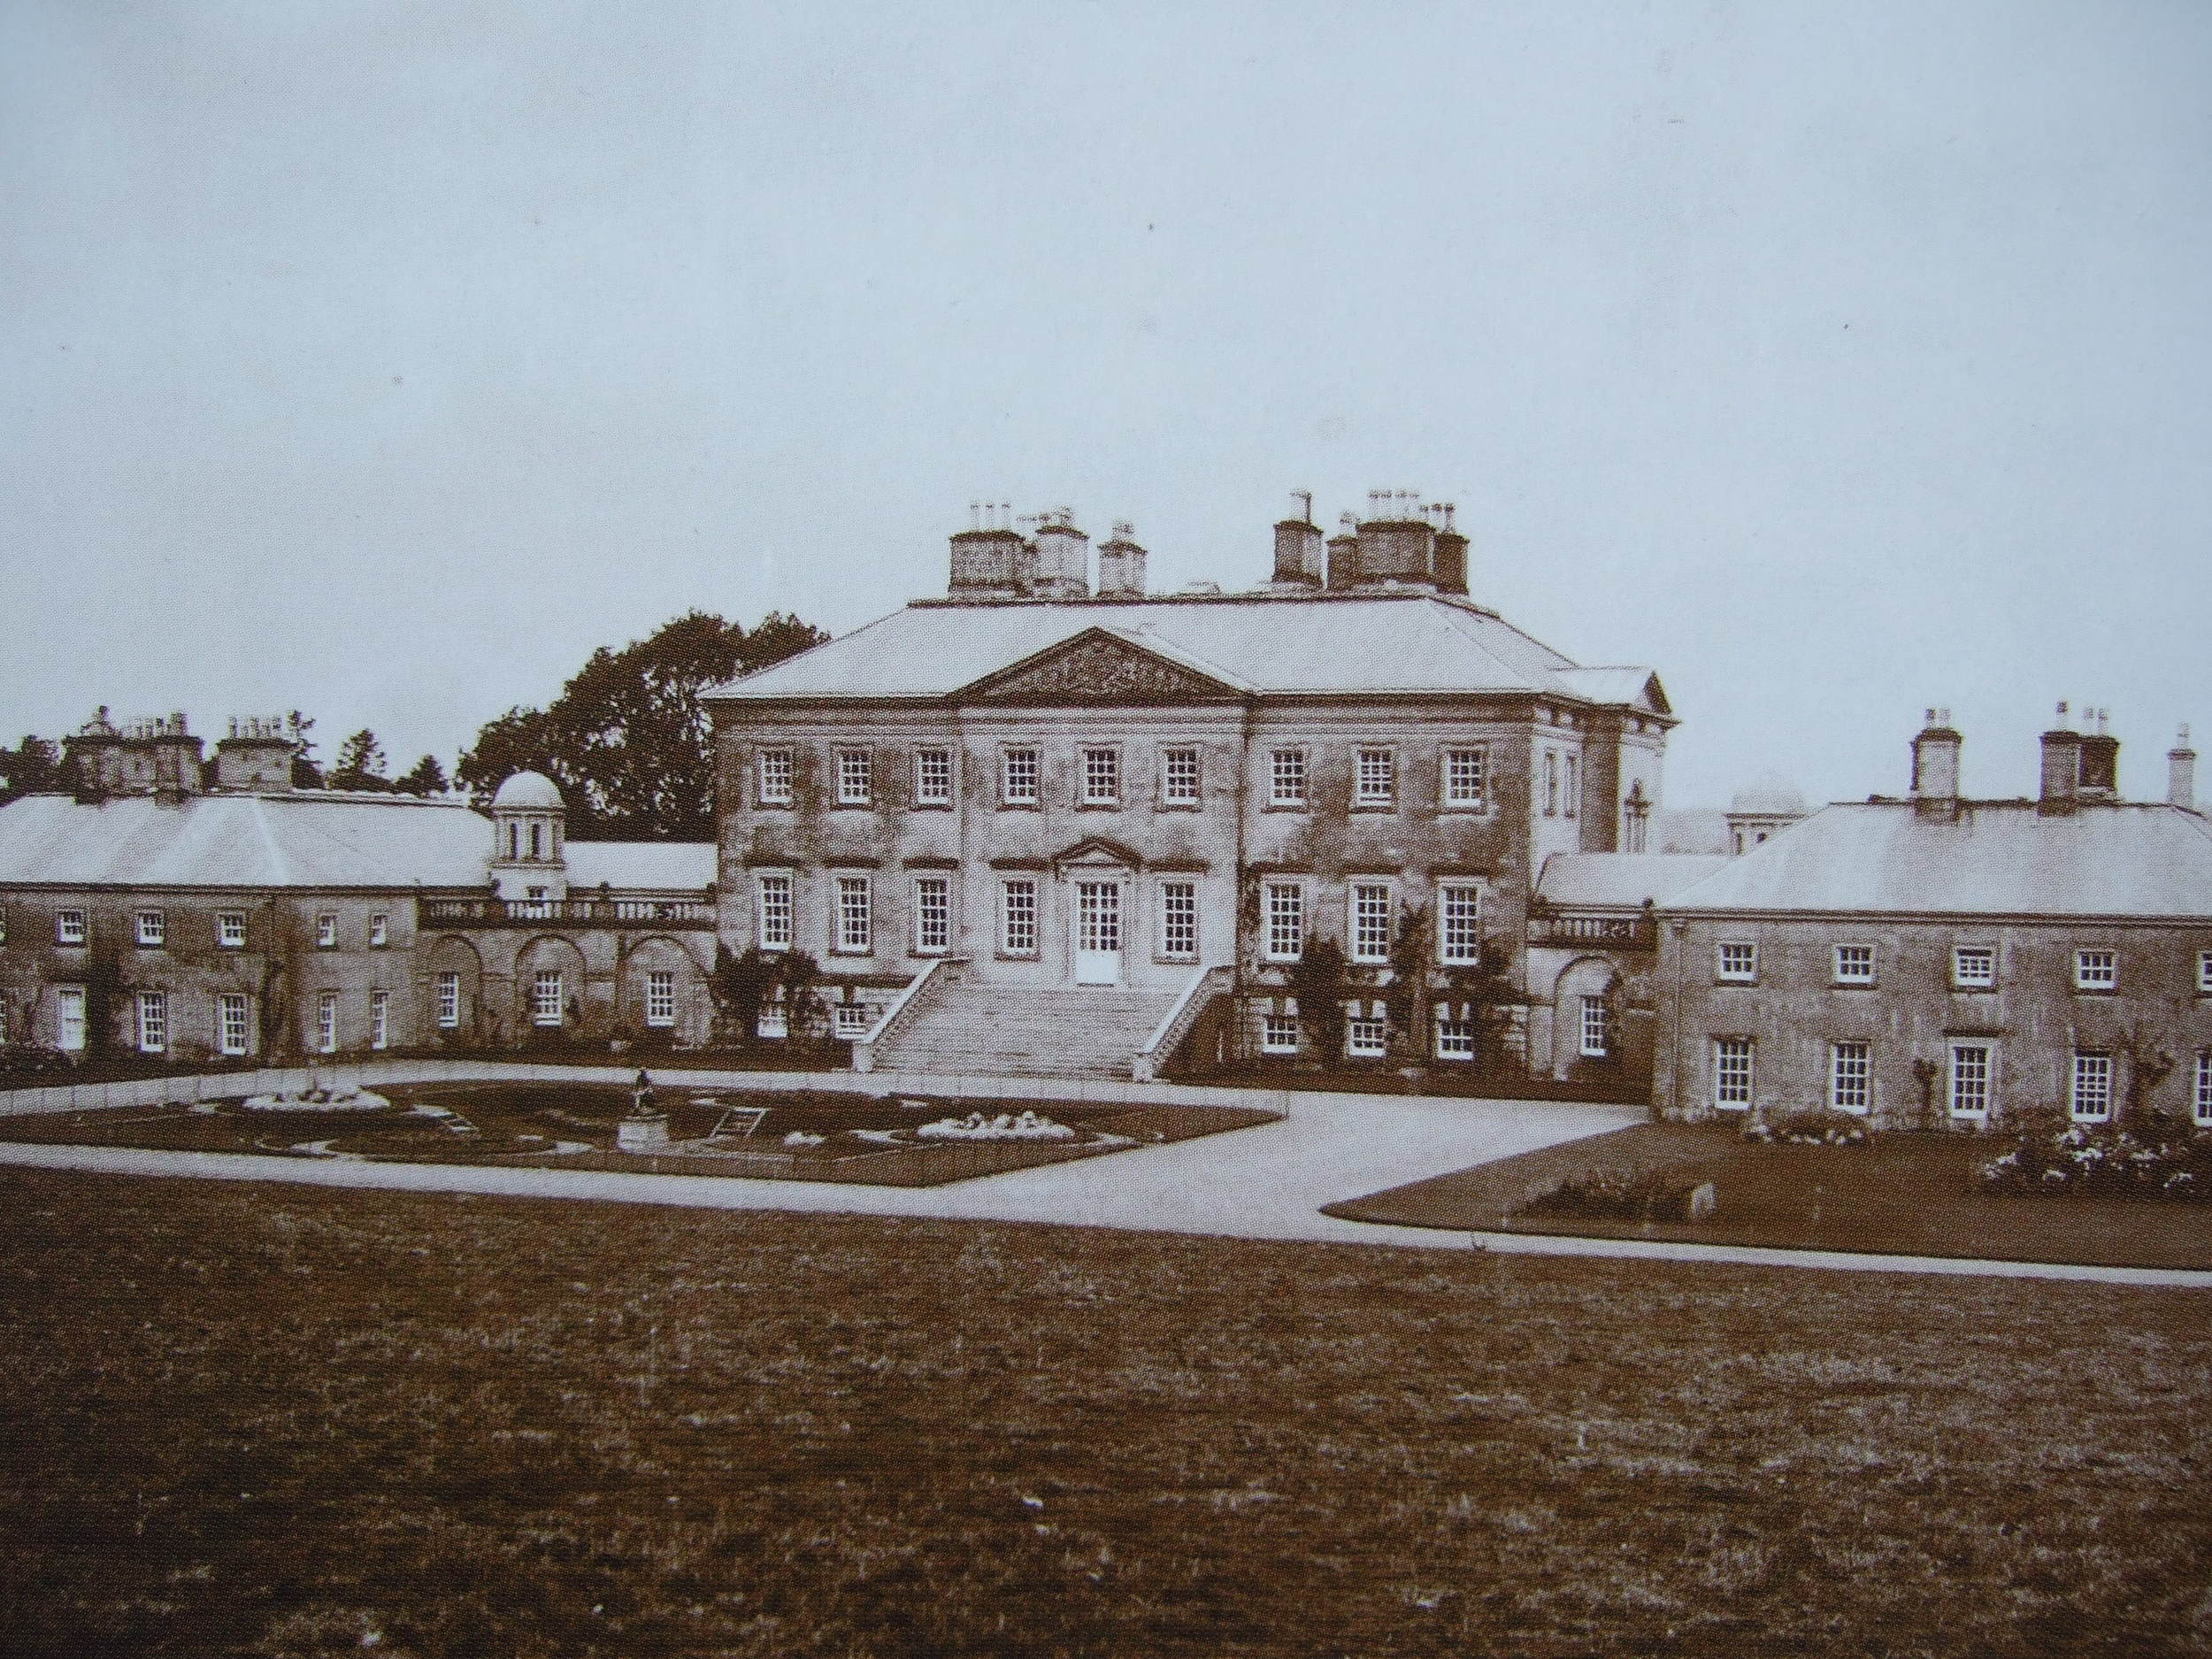 A Royal Rescue - Dumfries House